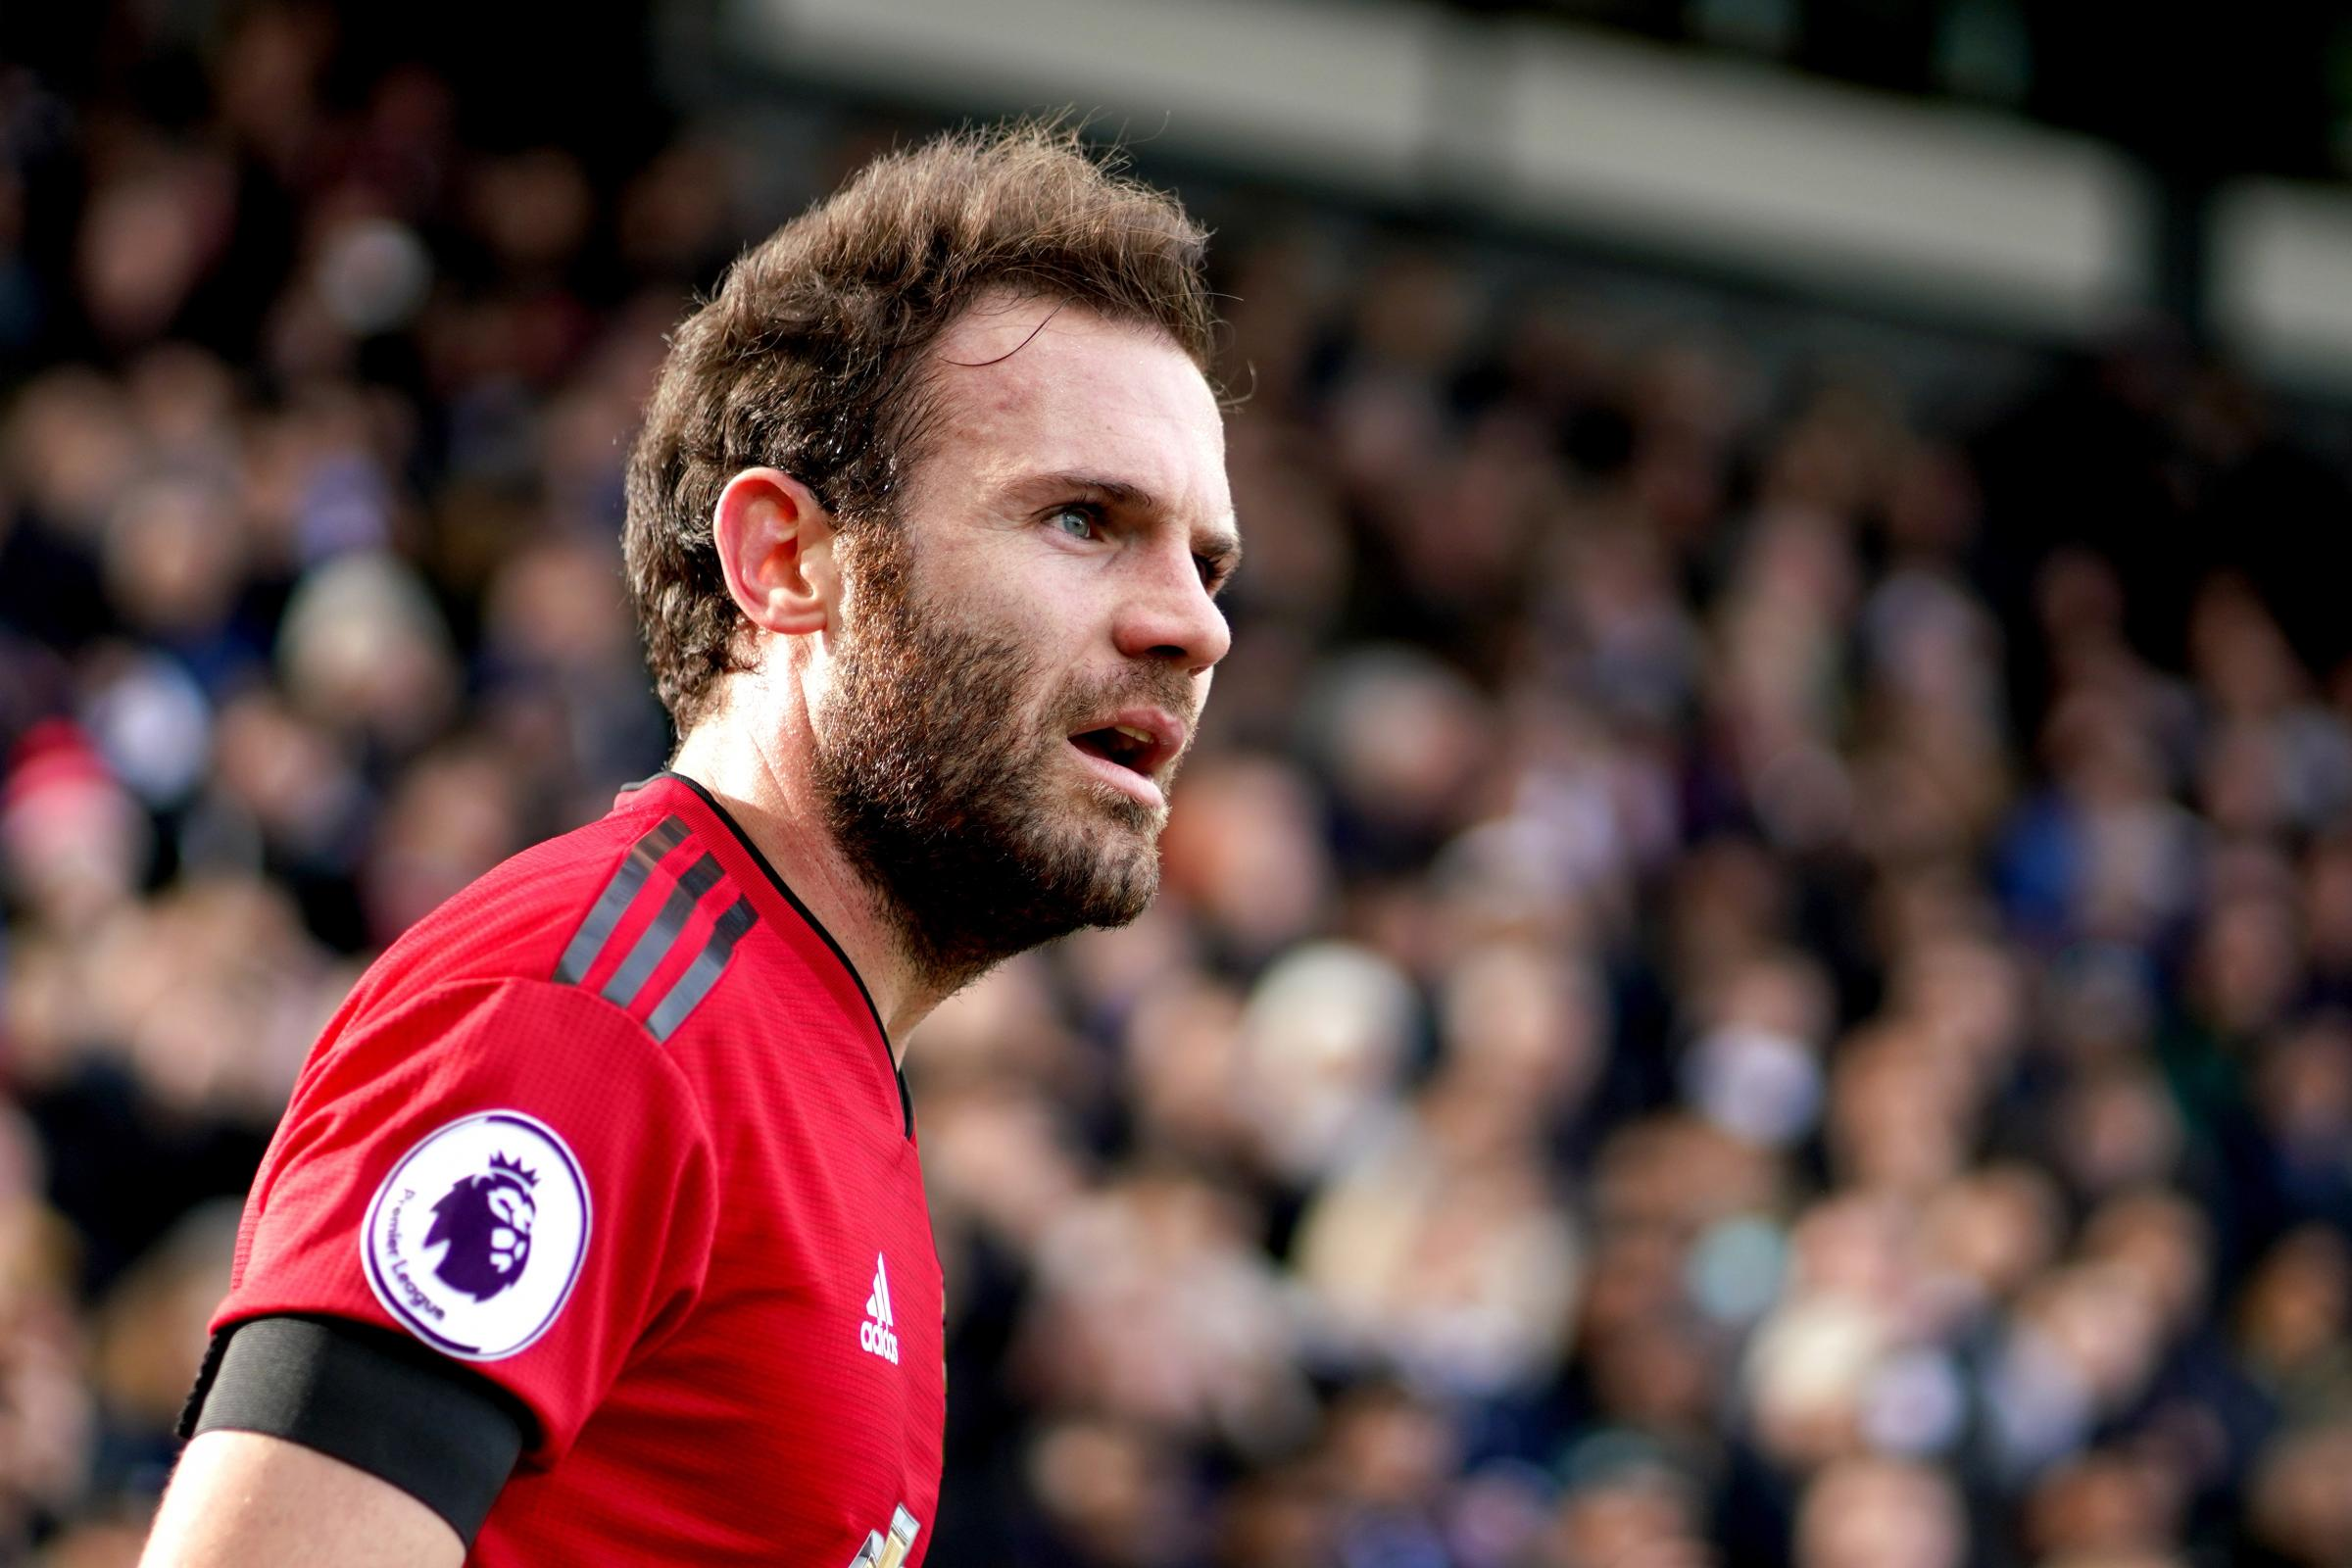 Juan Mata insists manchester United are focused on their top-four finish, not derailing Liverpool Premier League push